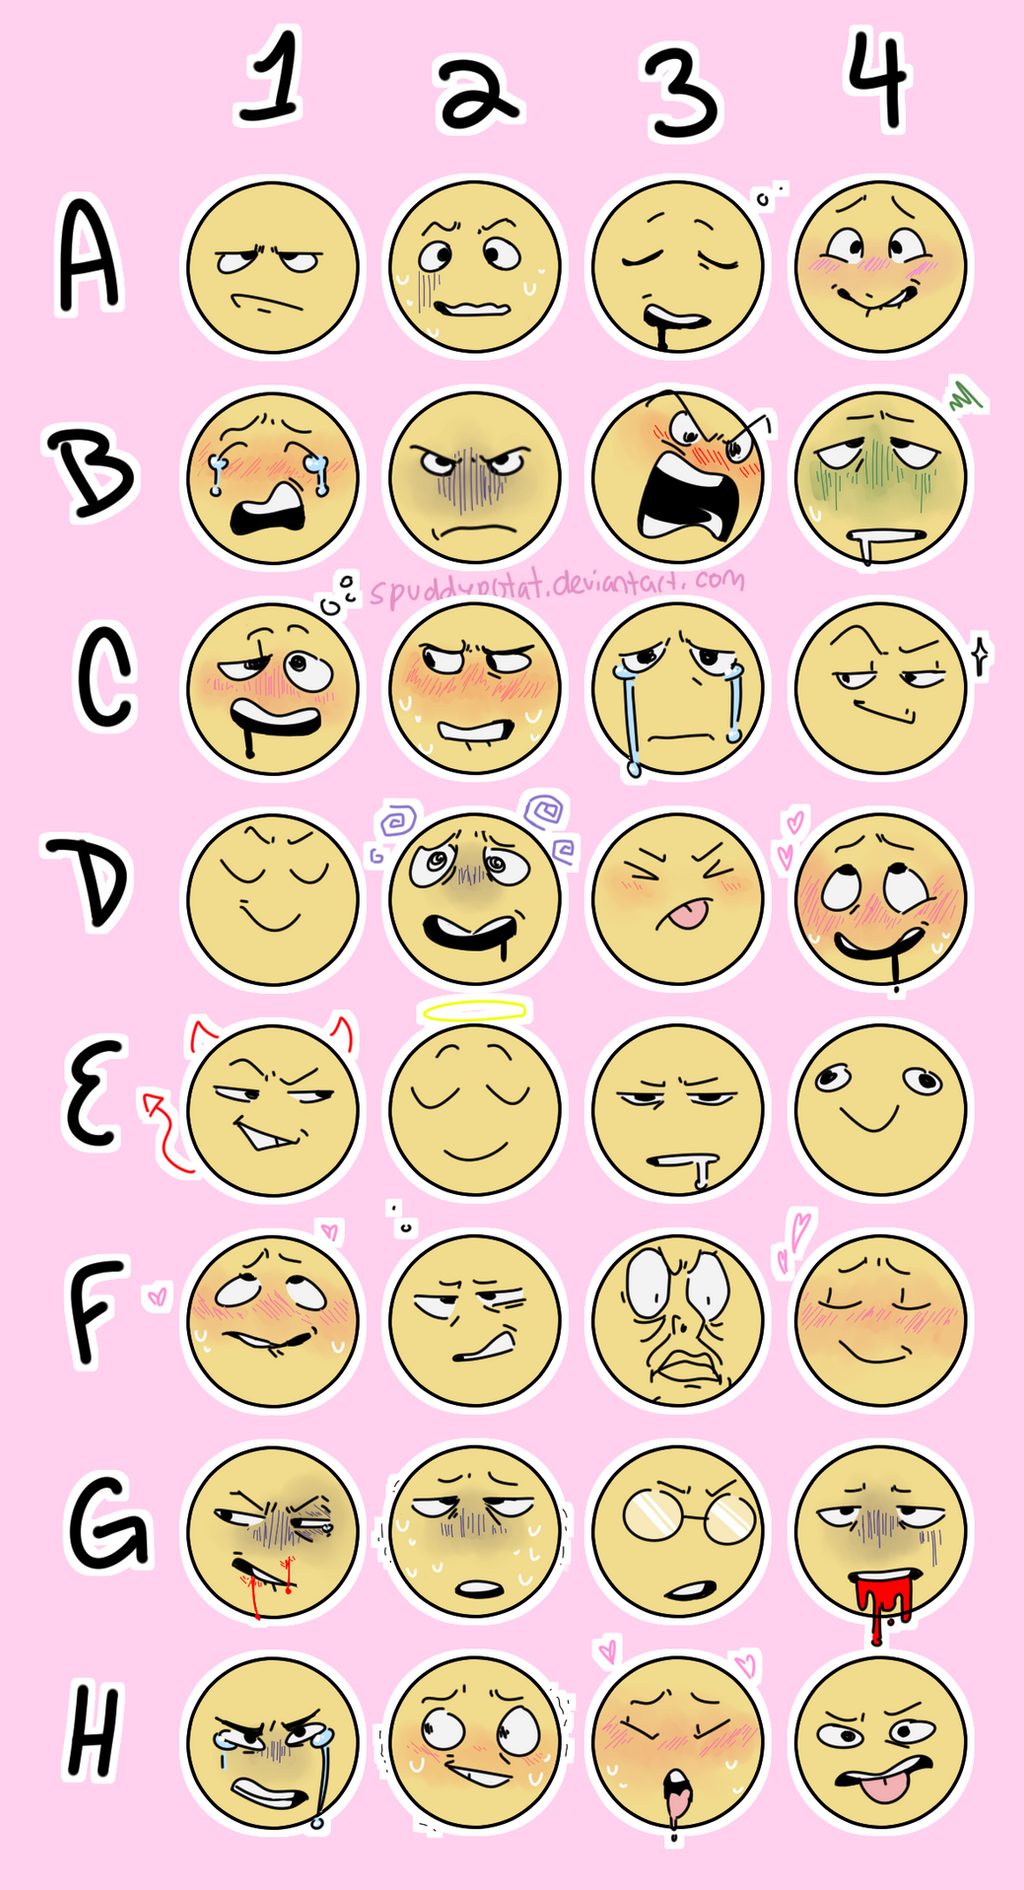 expression_meme_____by_spuddypotat db2xaad expression meme !!! by spuddypotat on deviantart